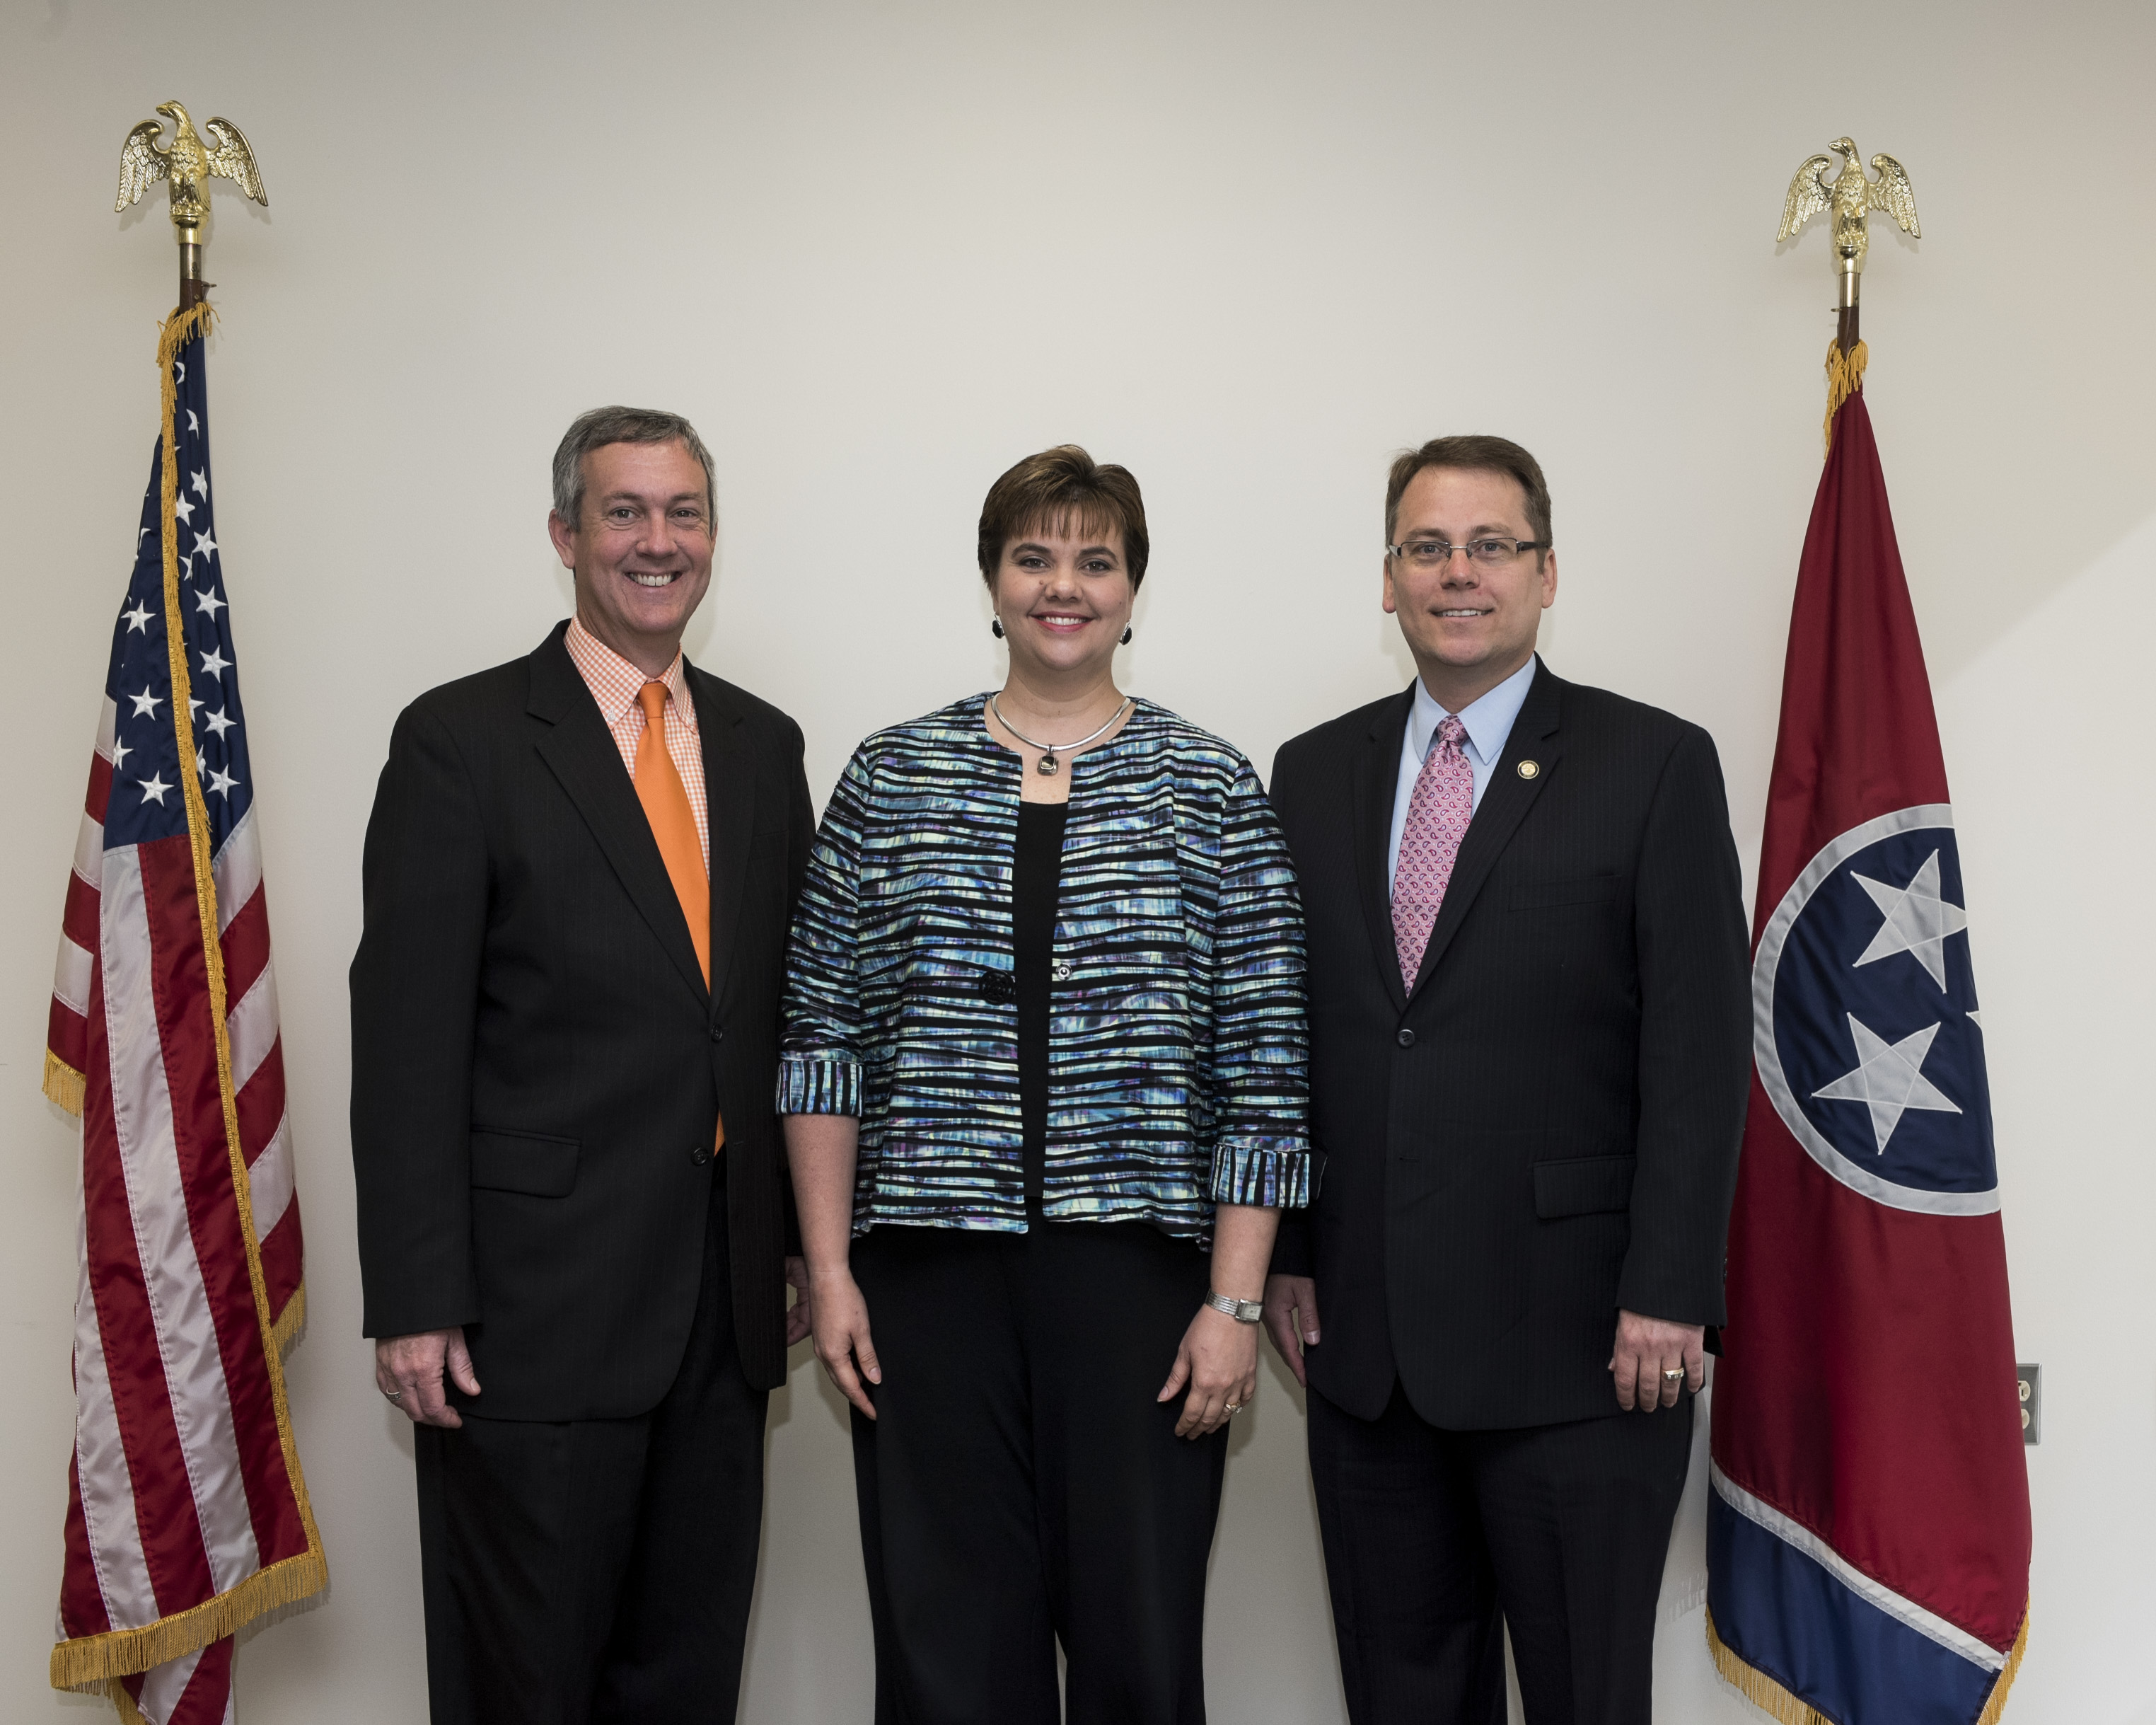 L to R: Secretary Hargett, Montgomery County Administrator of Elections Elizabeth Black and Coordinator of Elections Mark Goins May 2, 2017.